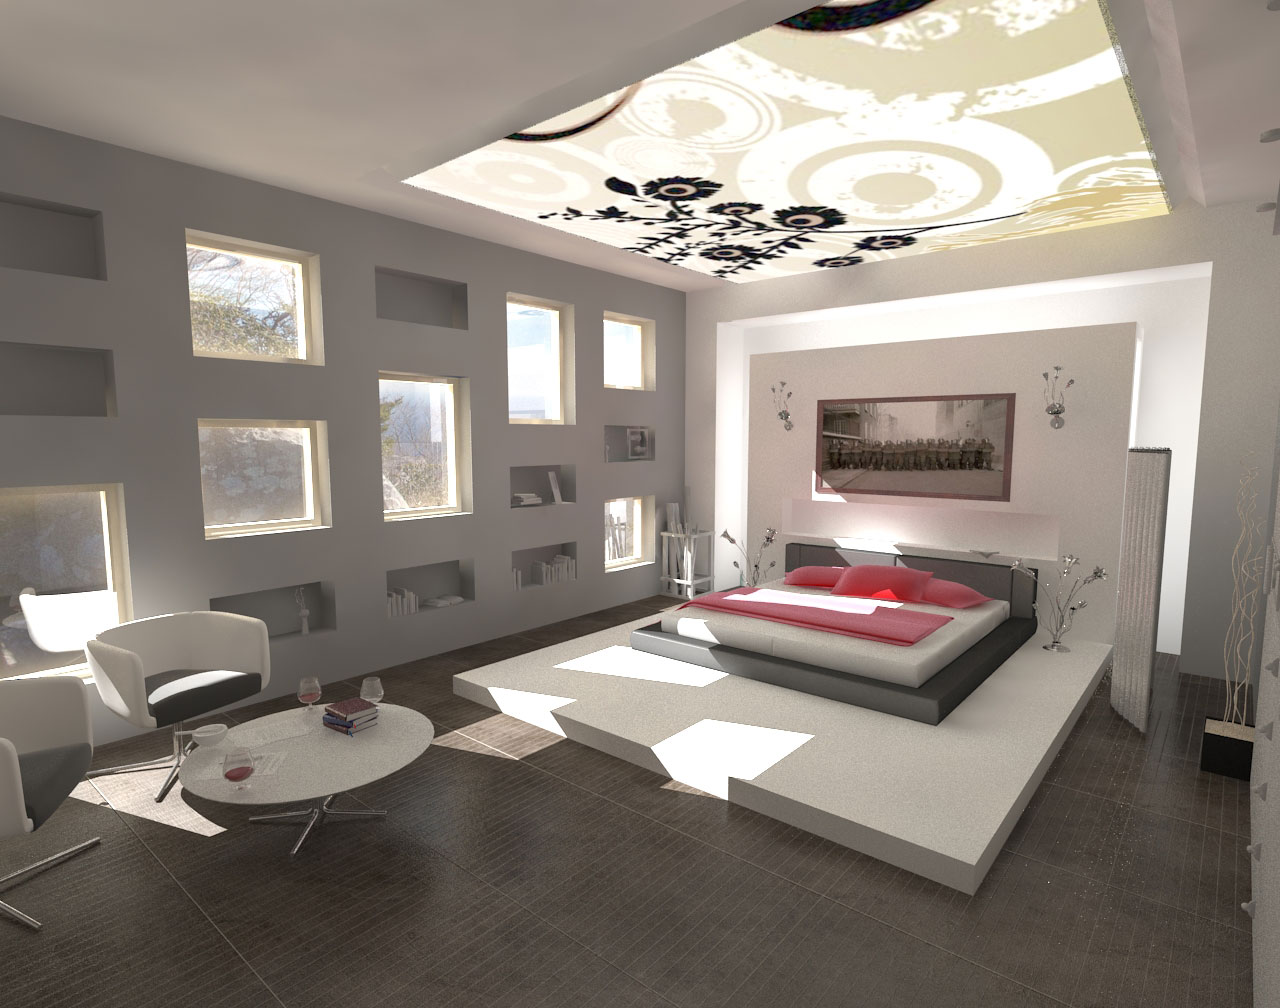 Modern bedroom design ideas photograph decorations minima Modern minimalist master bedroom